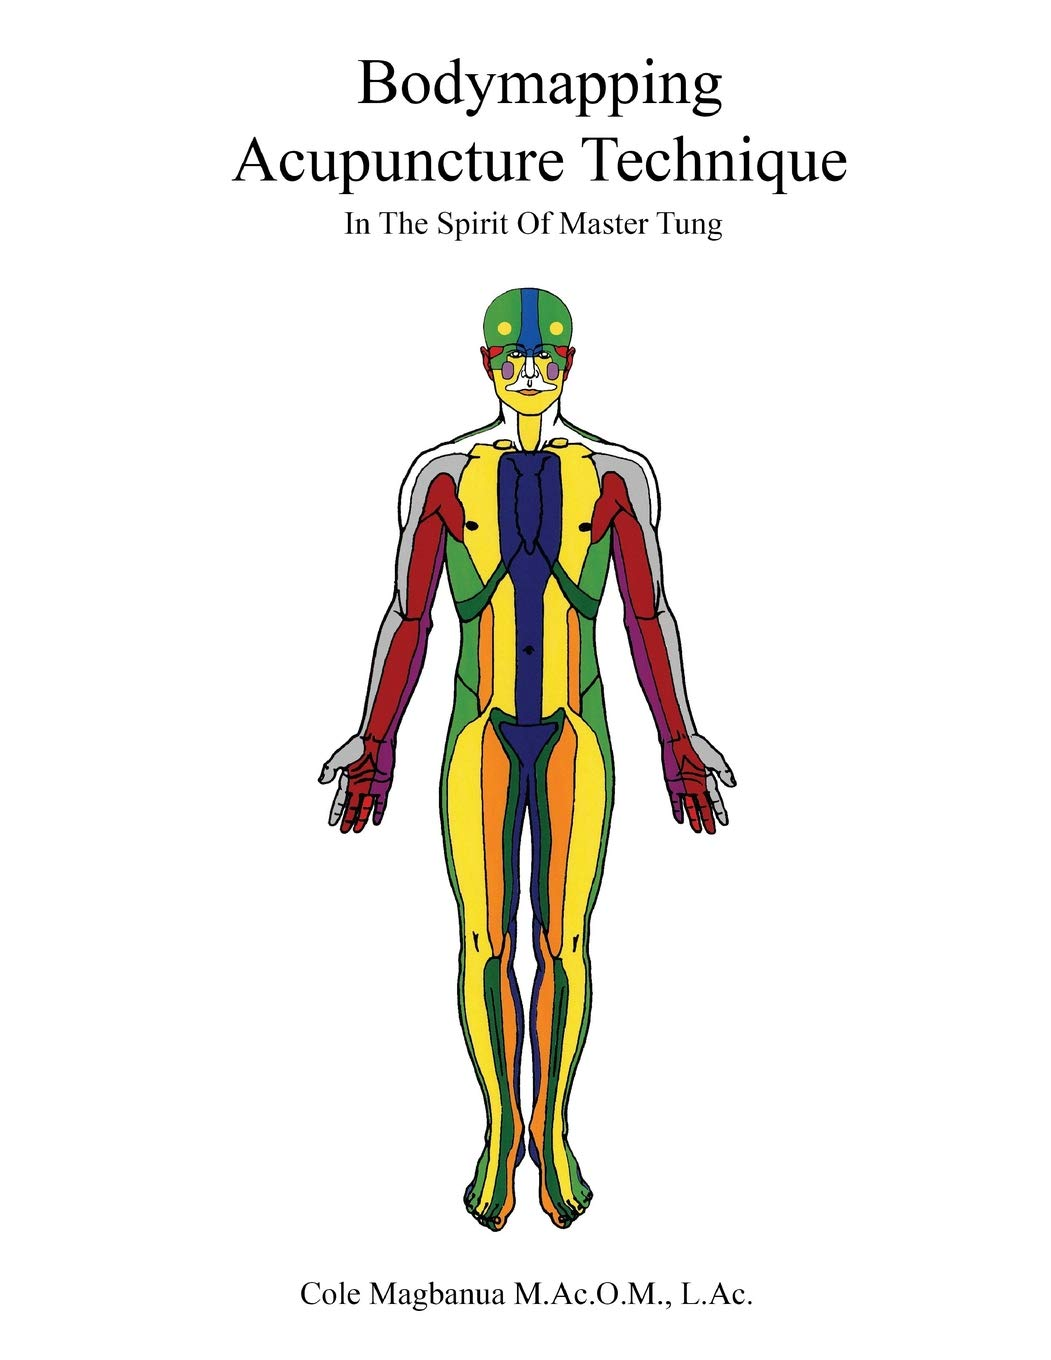 Bodymapping Acupuncture Technique  In The Spirit Of Master Tung